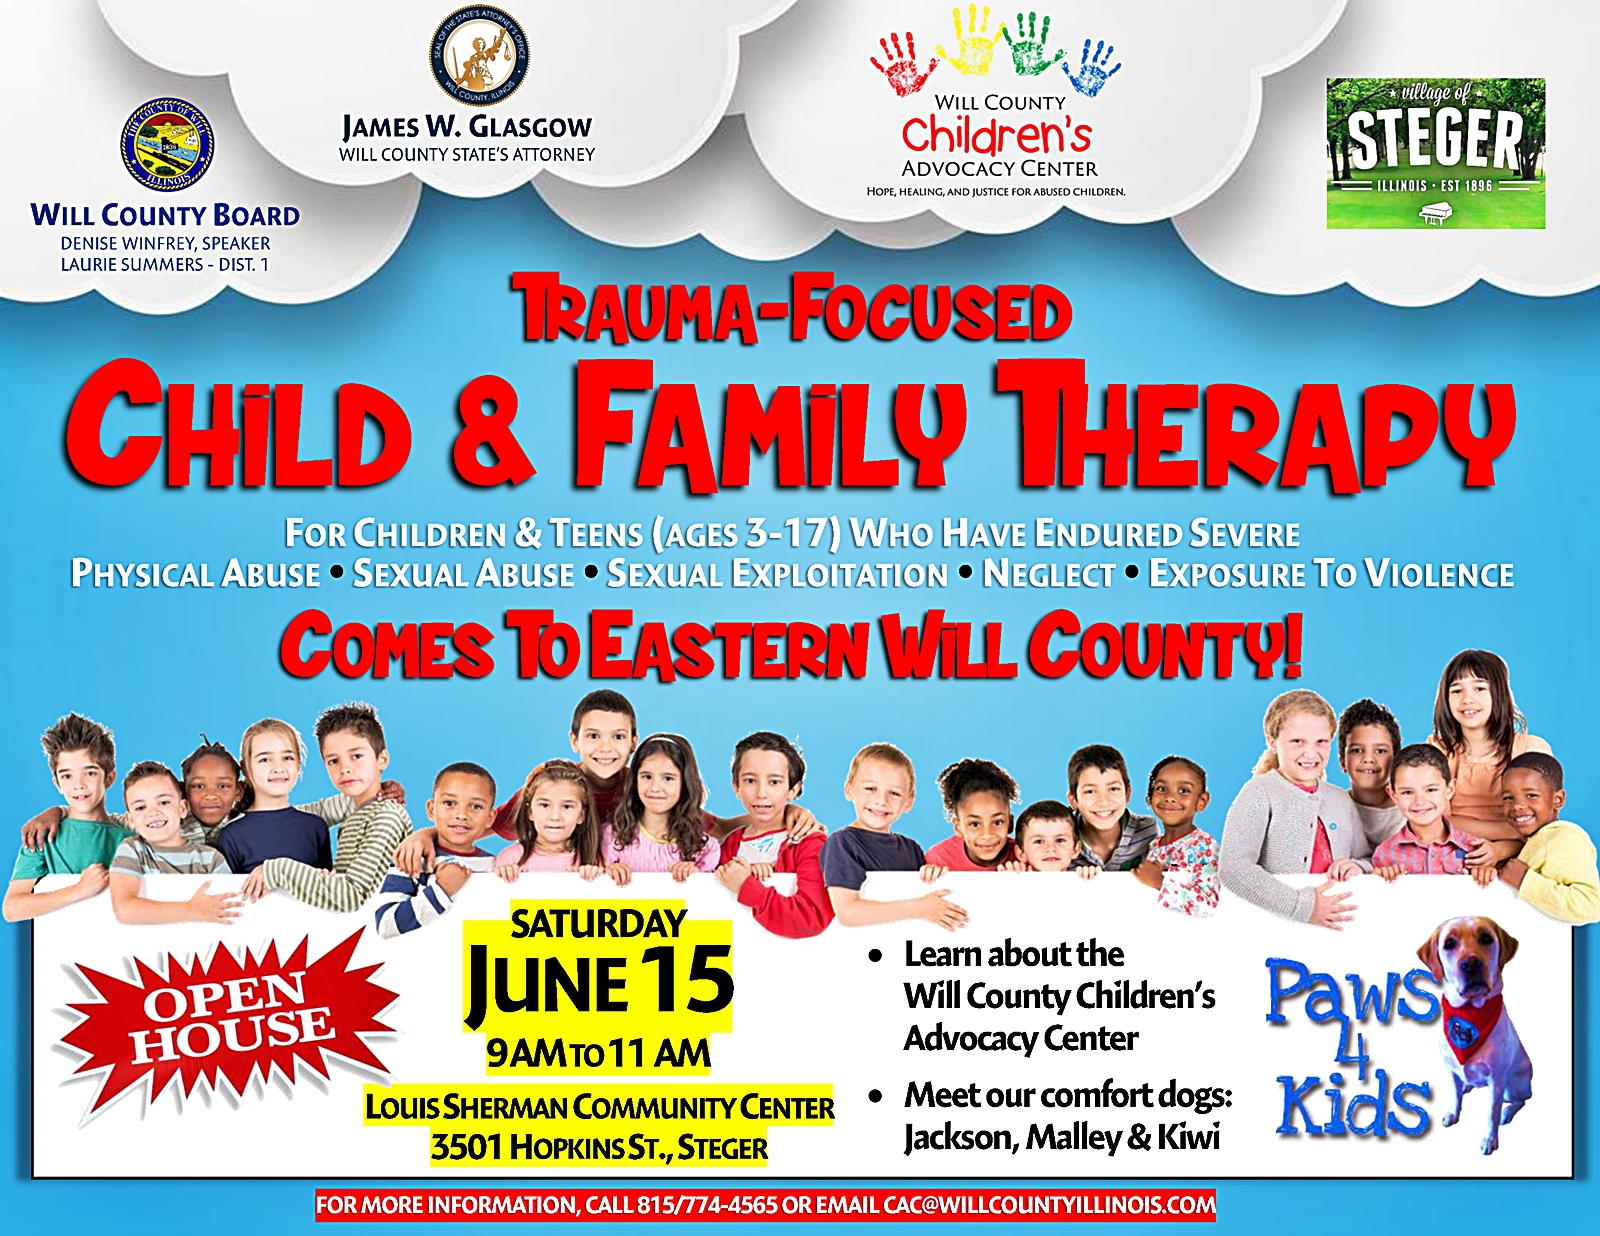 Will County Children's Advocacy Center to Offer Counseling in Eastern Will: Community Invited to June 15 Open House in Steger